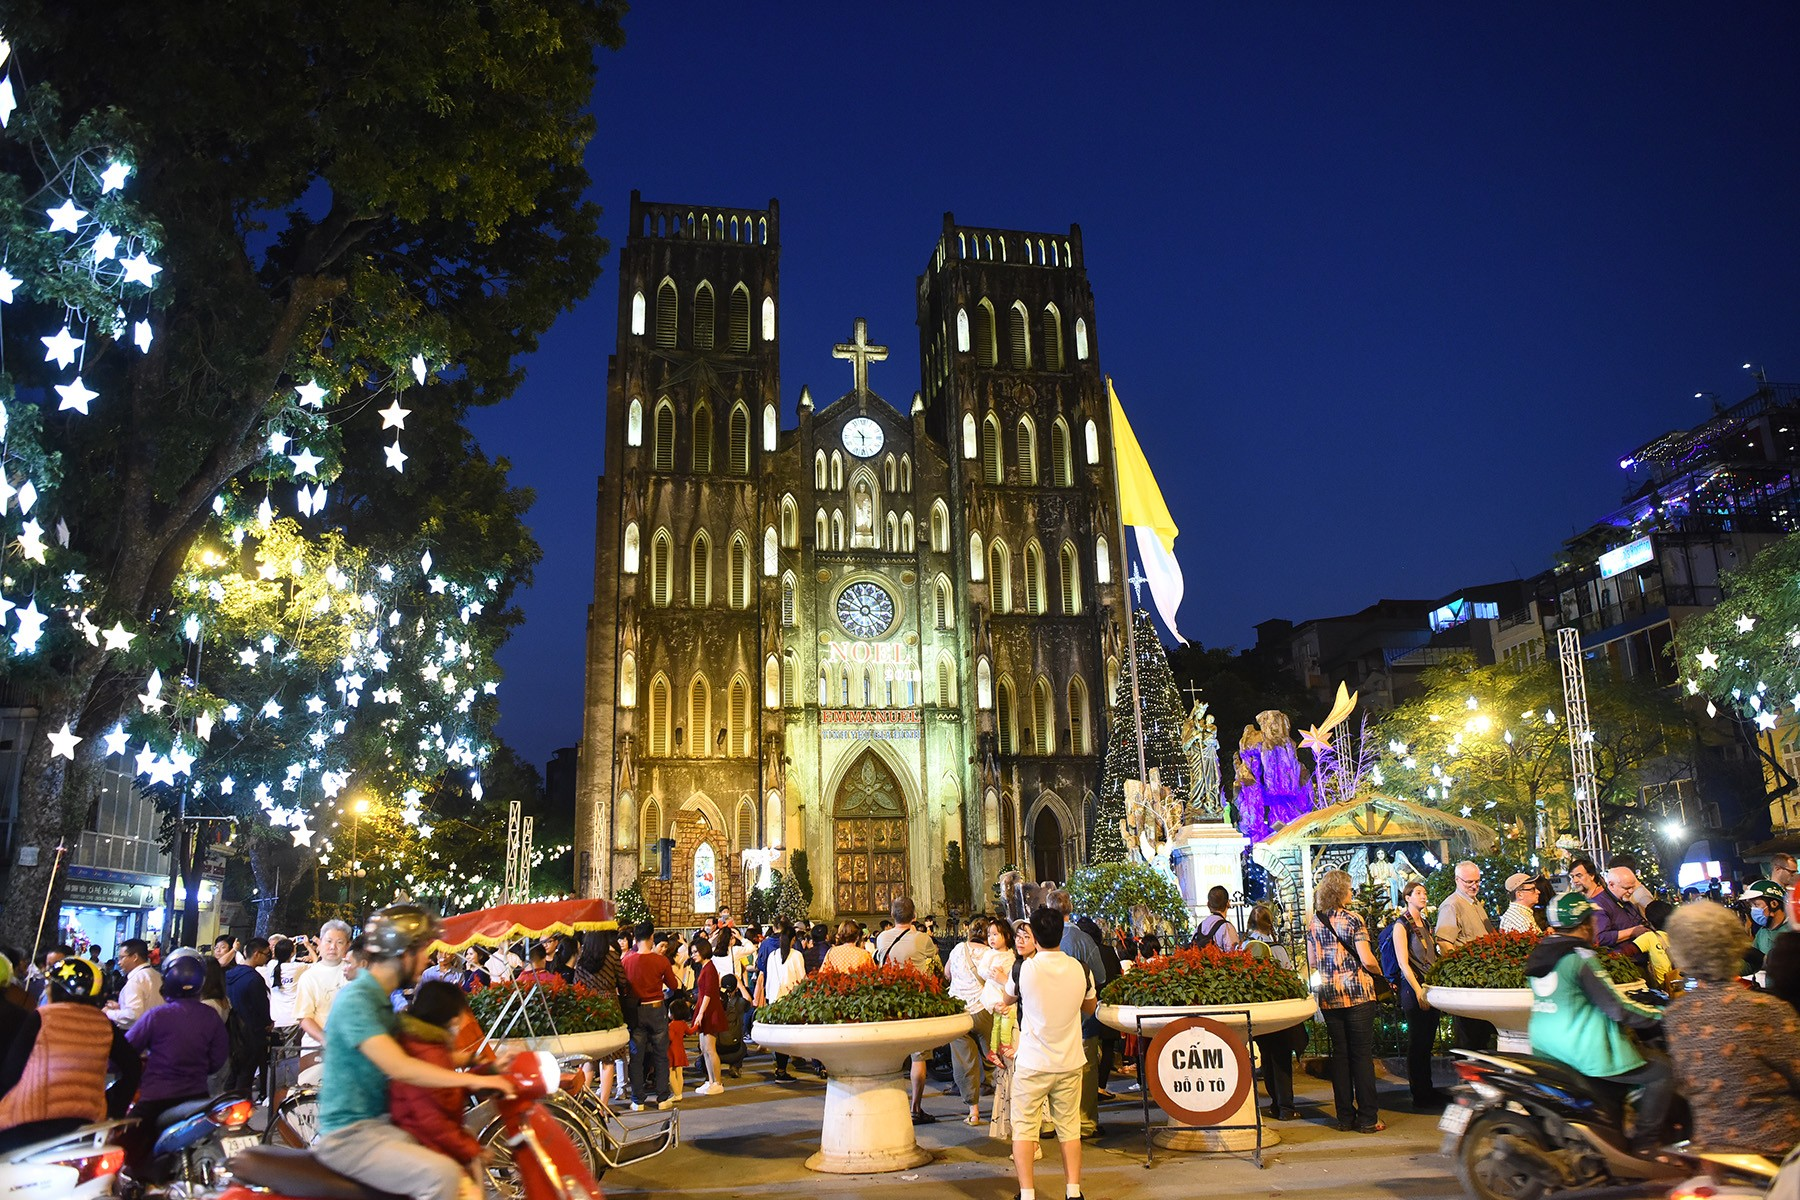 From Hanoi to Seoul and Moscow, the Christmas lights and decorations bring festive cheer around the world.